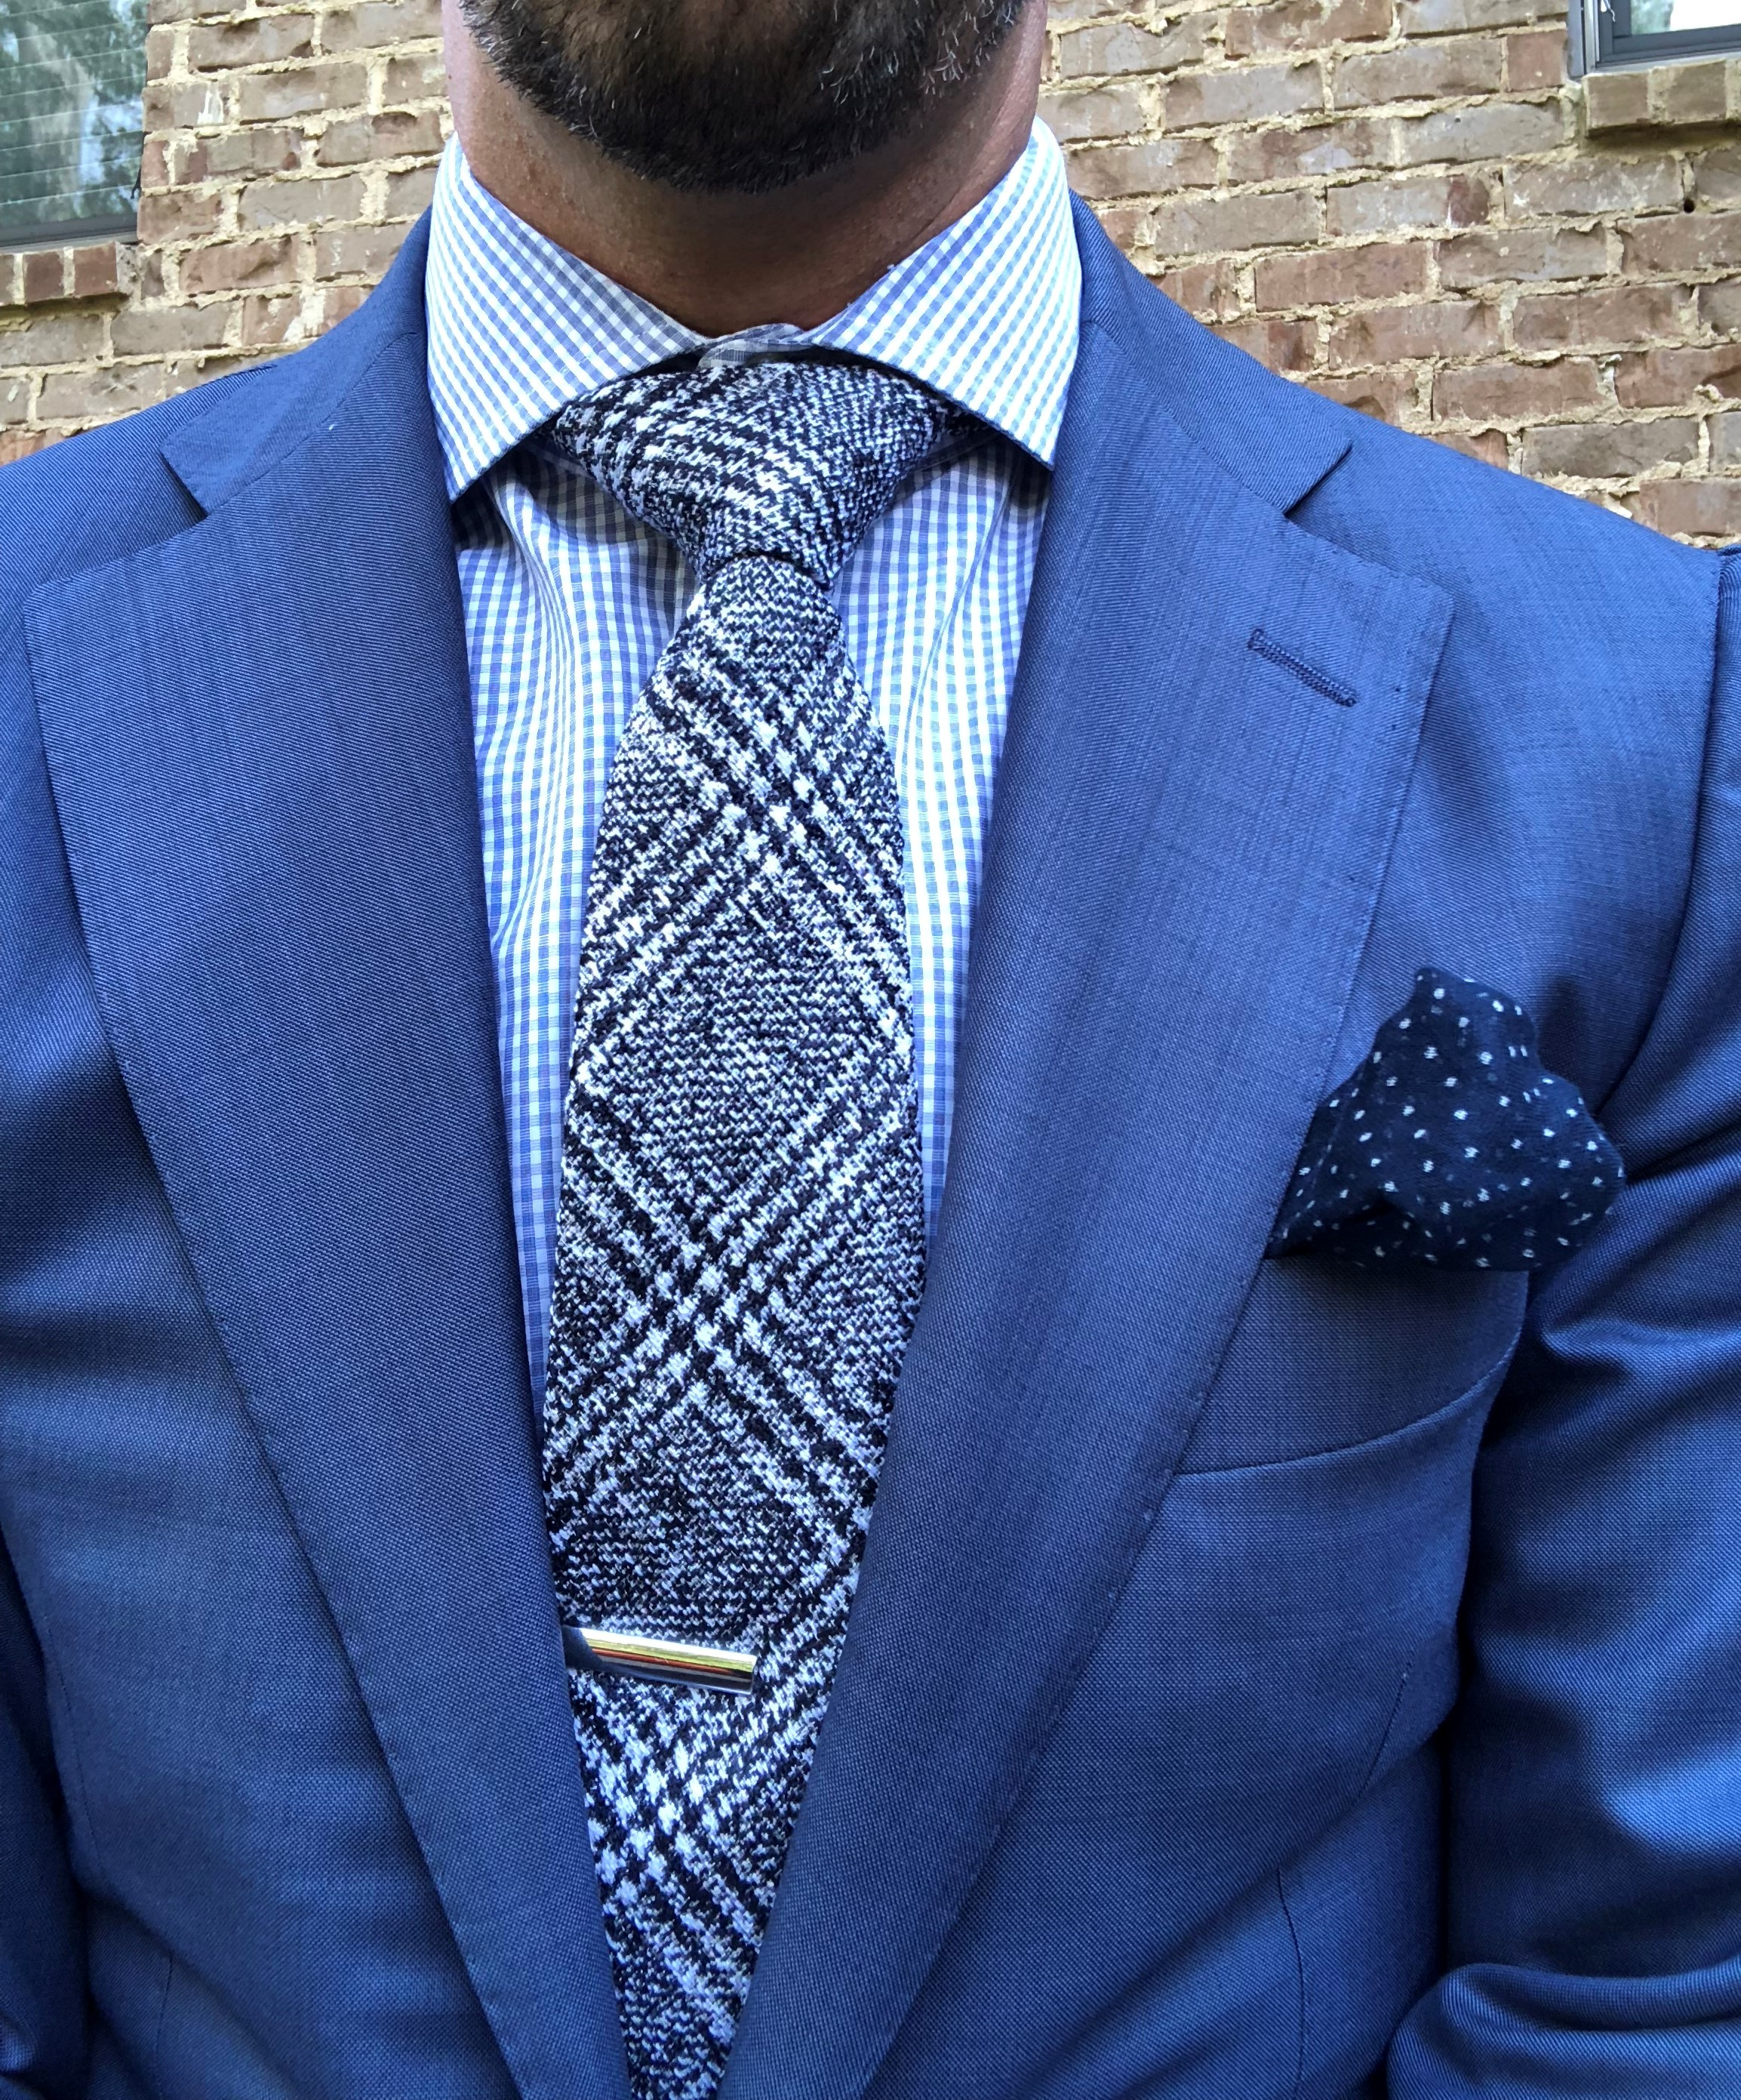 Confidence radiates…and can become part of your style. -